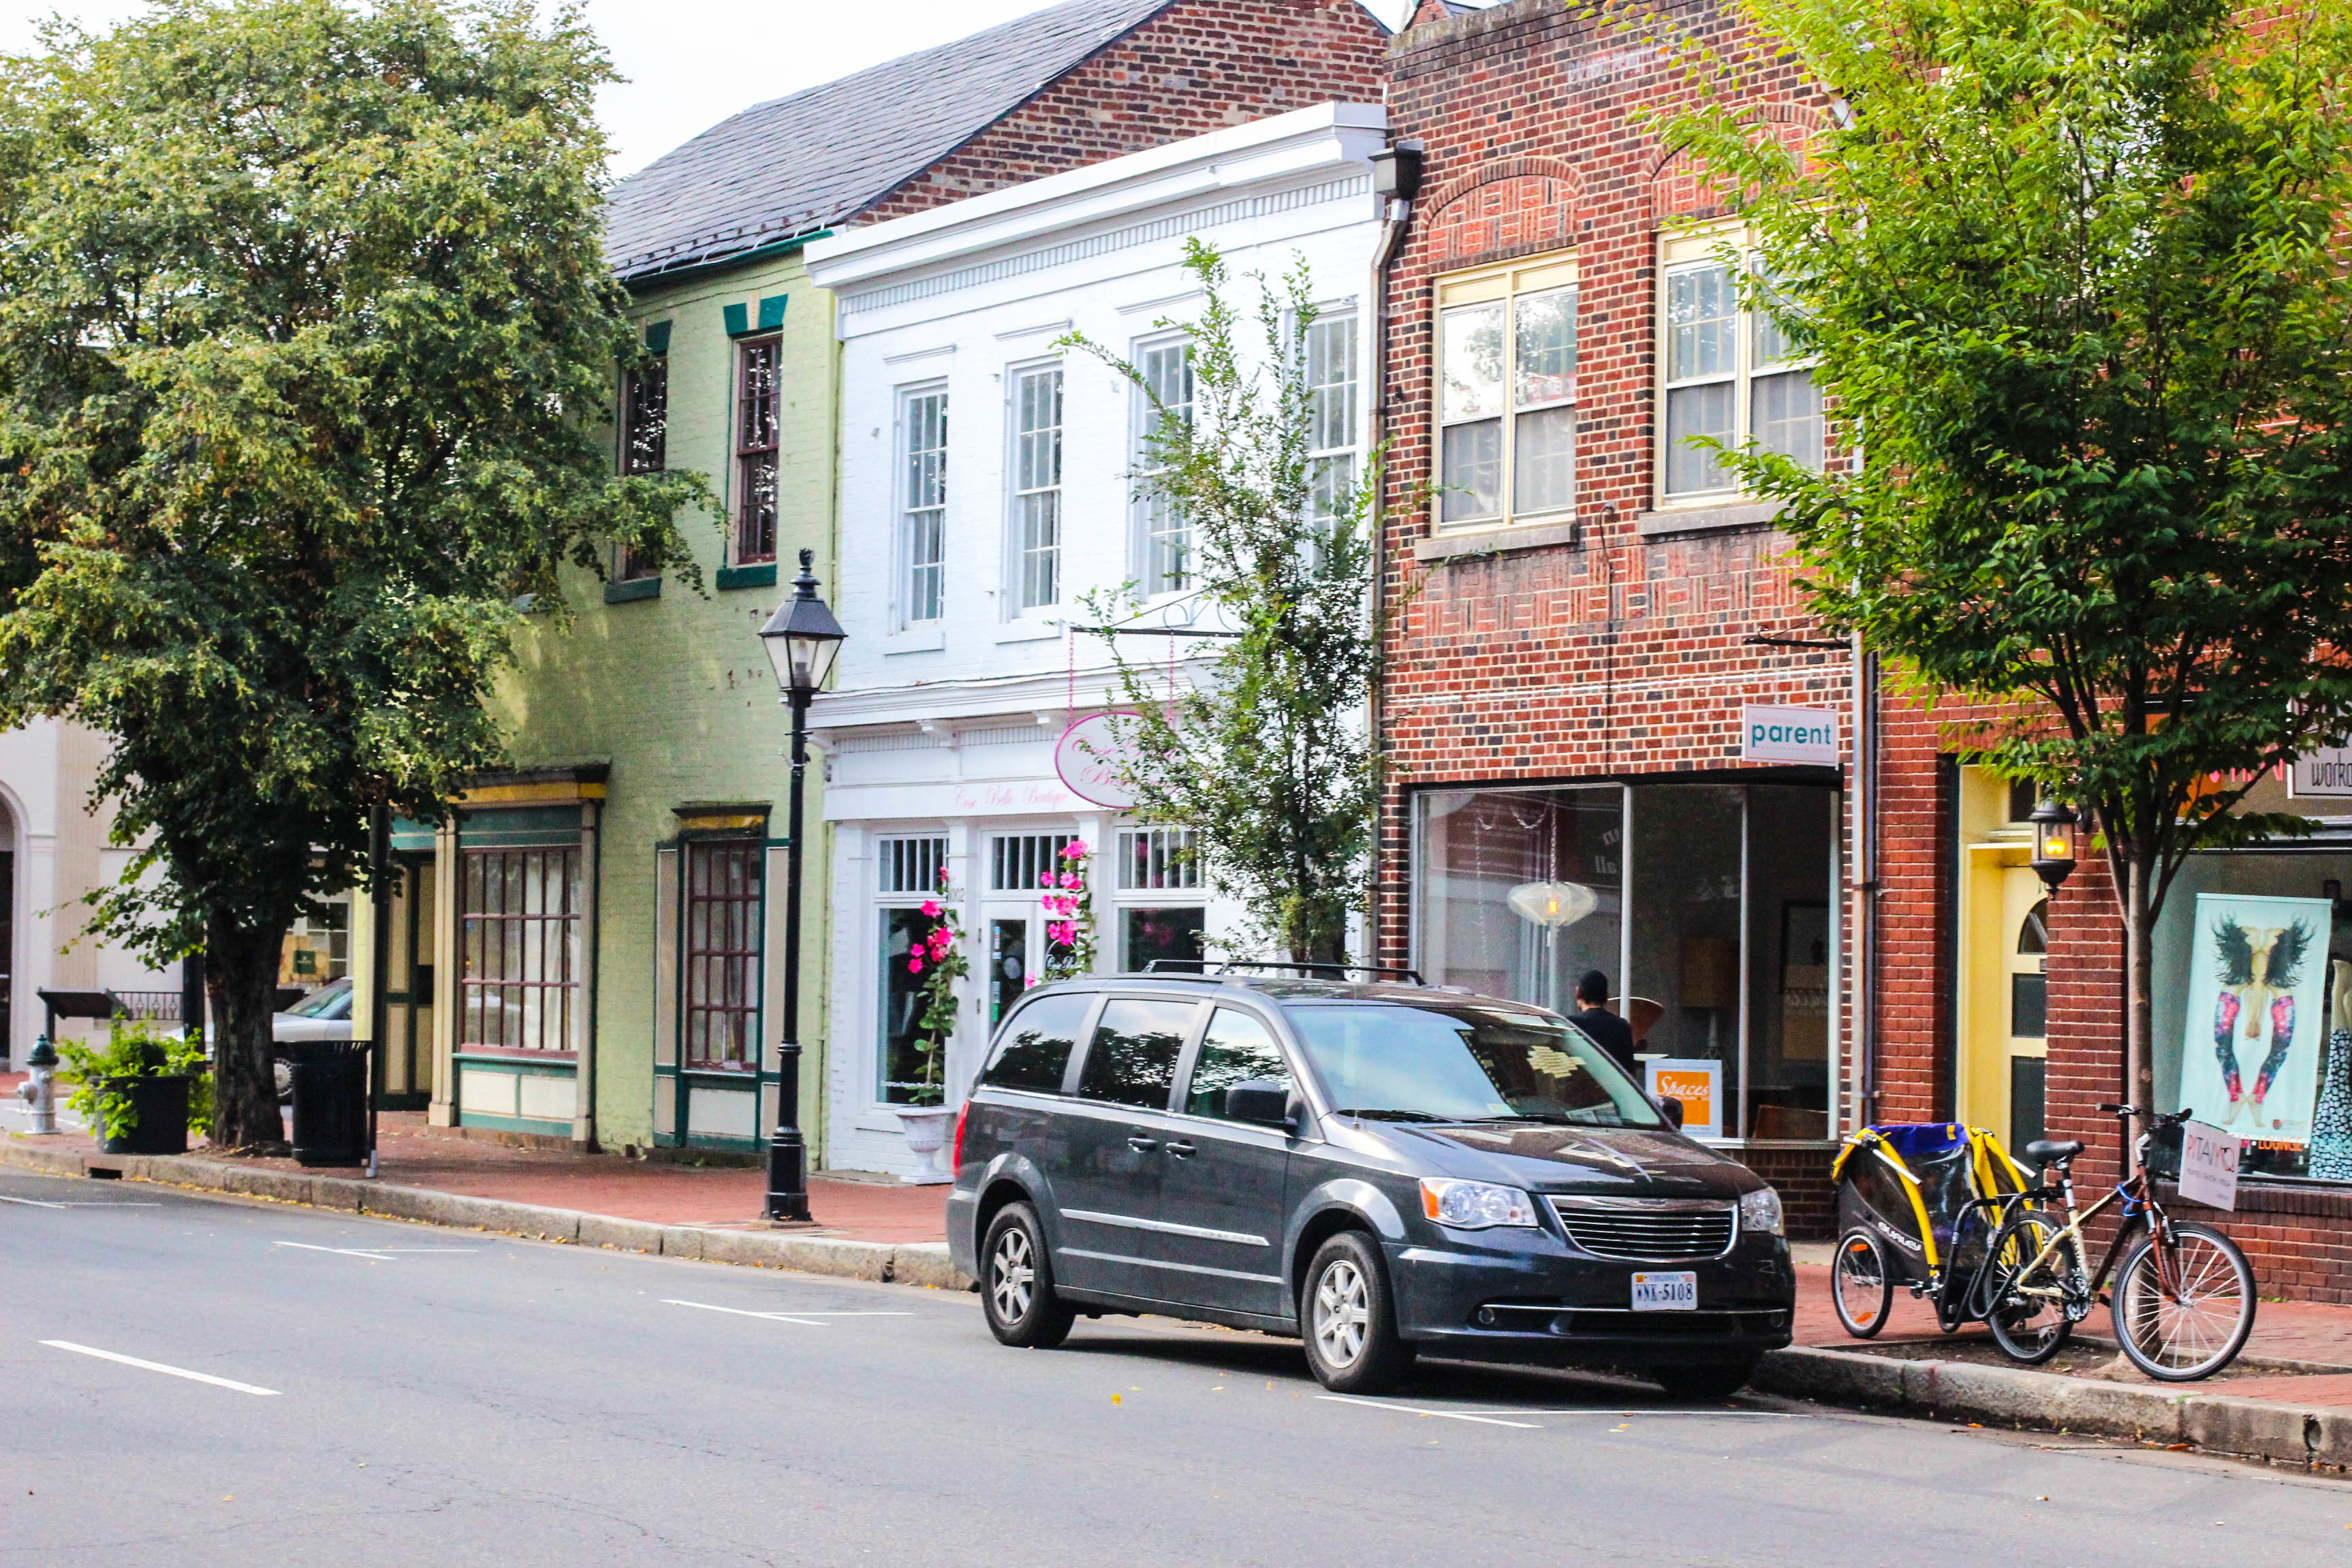 Local businesses in Historic Downtown Fredericksburg